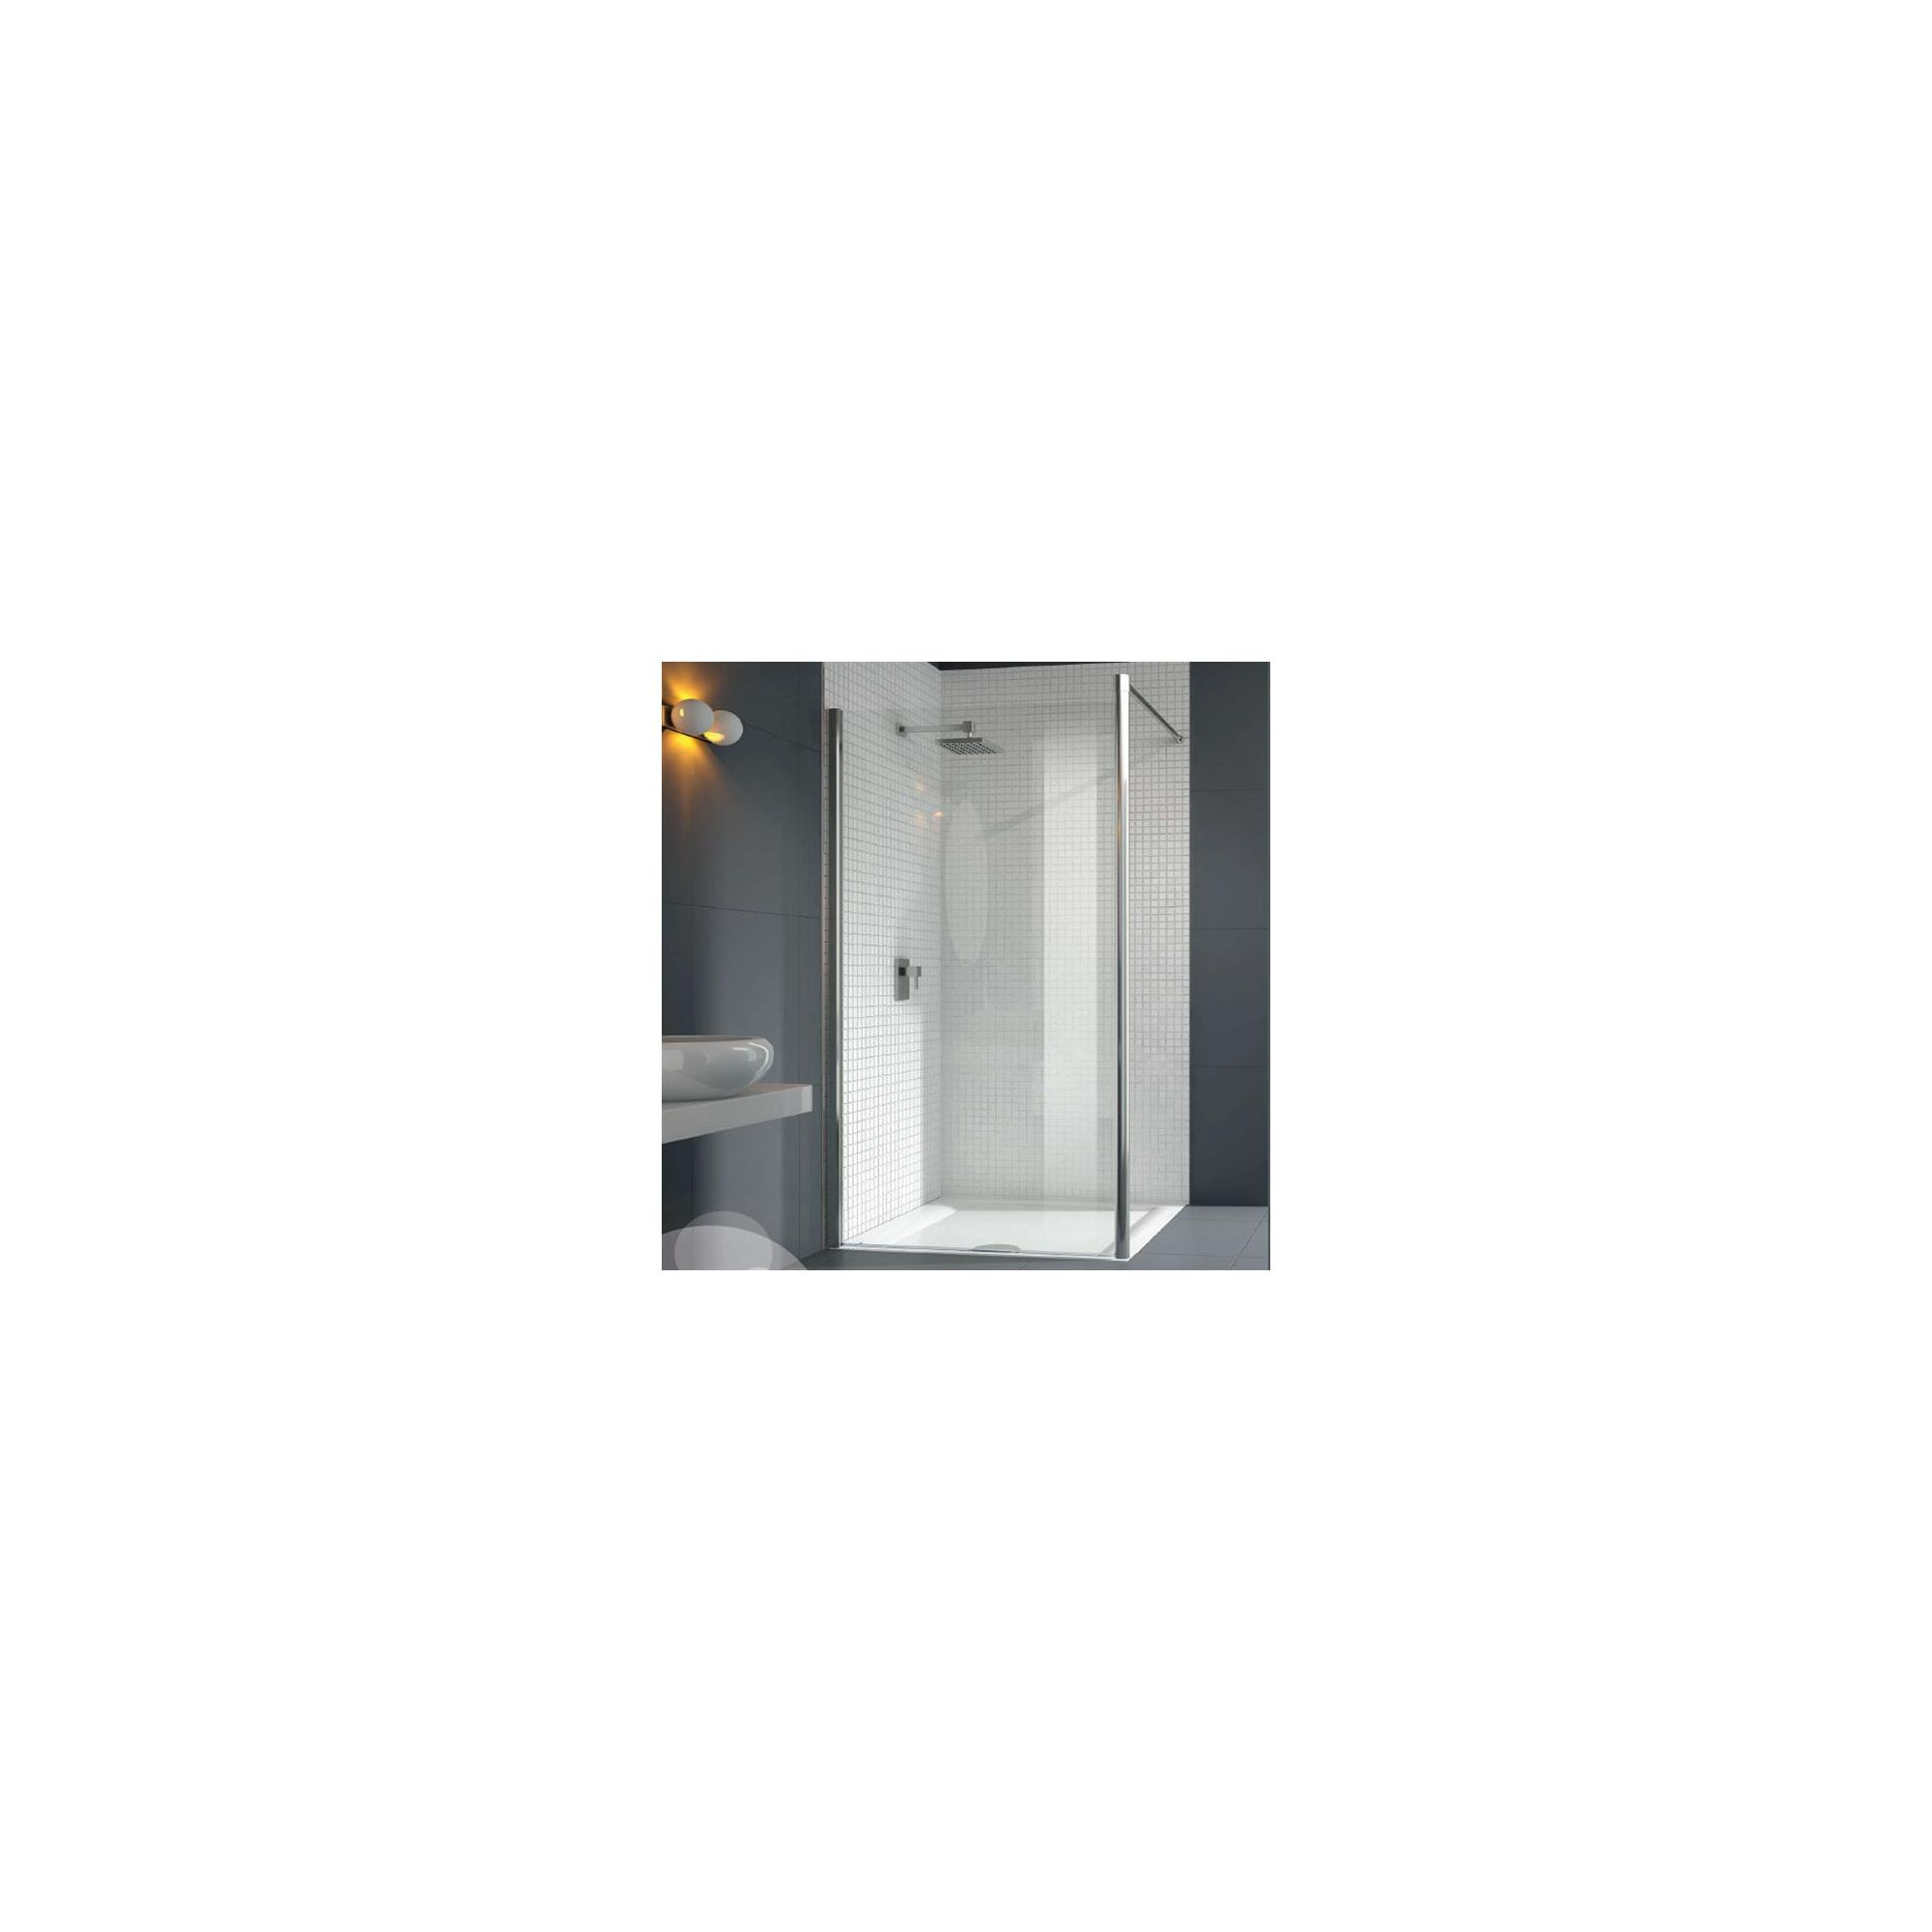 Merlyn Vivid Six Wet Room Shower Glass Panel 1200mm Wide with Horizontal Support Bar at Tesco Direct